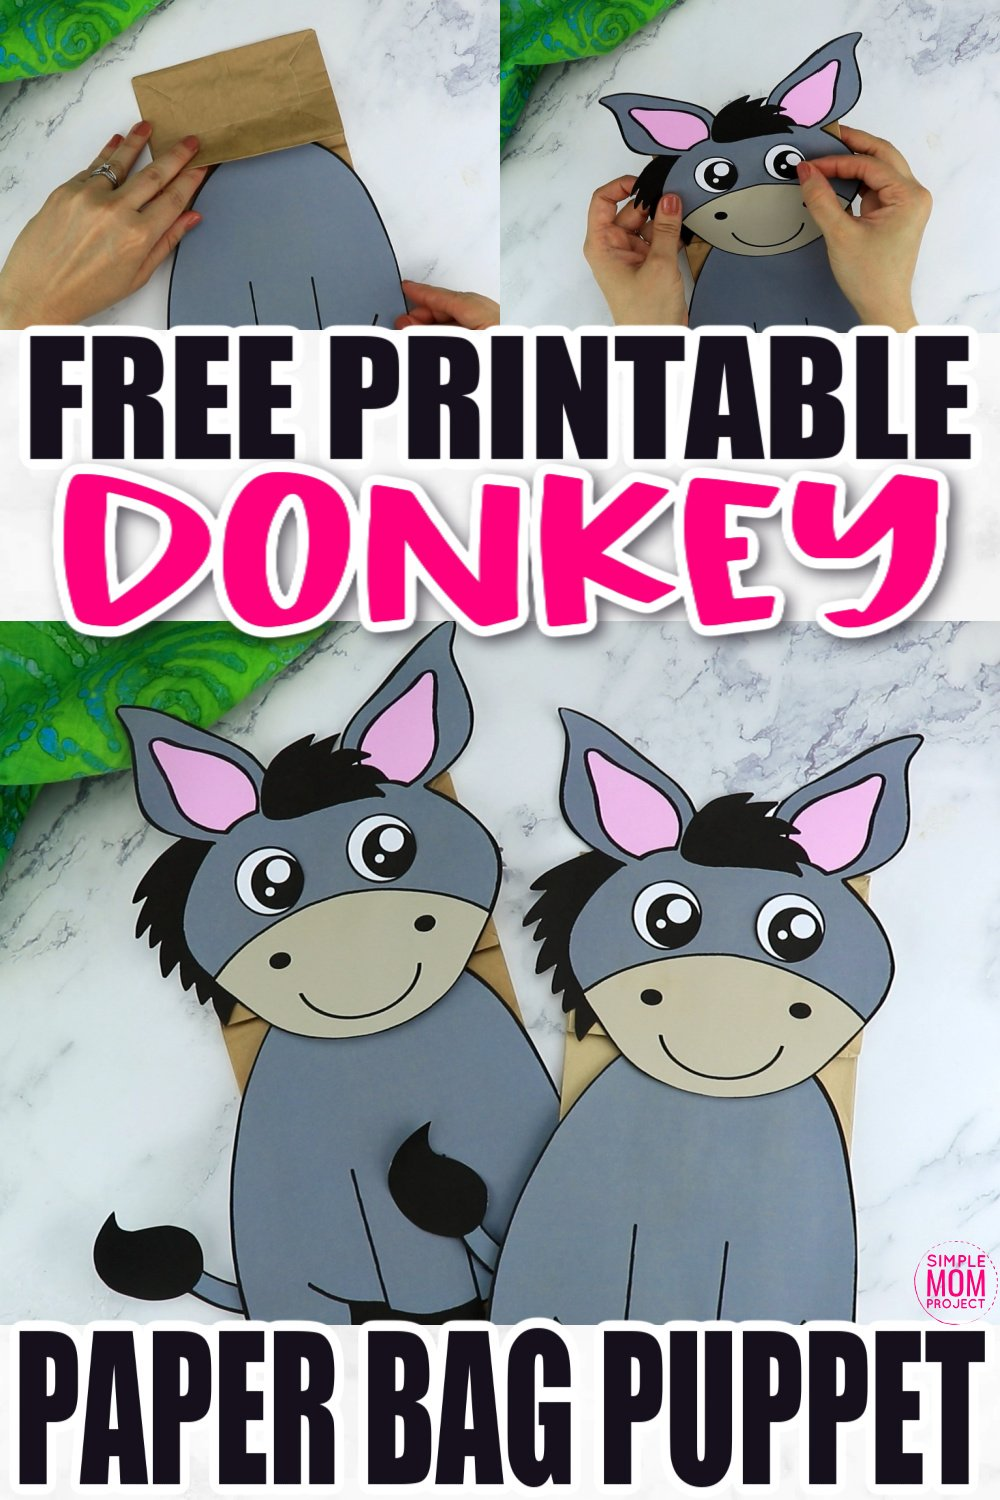 Are you looking for a fun way to put on a puppet show? Click now to download and print our paper bag puppet donkey template. Your kids will love putting on their favorite animal and make funny donkey noises! This donkey paper bag puppet craft is perfect for kids of all ages including preschoolers and toddlers.